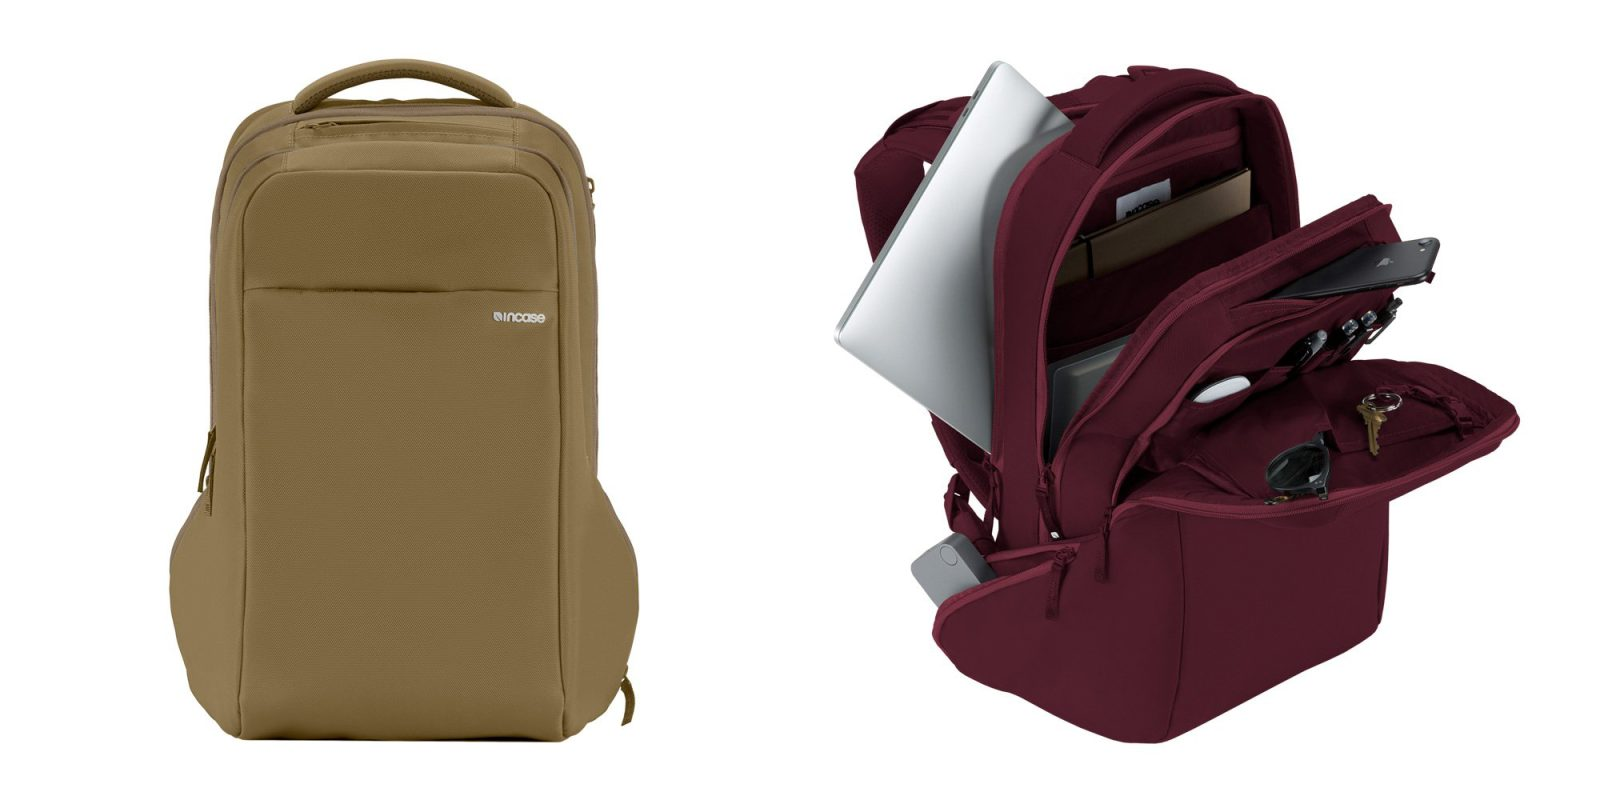 Incase ICON Backpack has storage for a 15-inch MacBook Pro, more